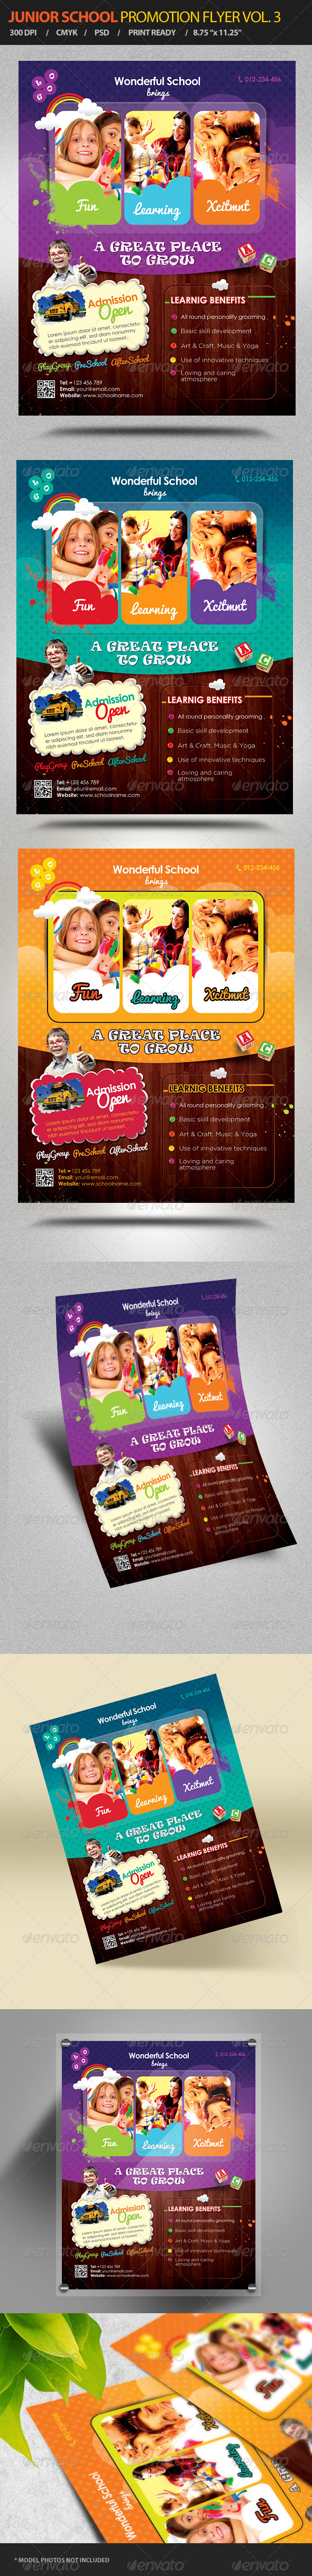 GraphicRiver Junior School Promotion Flyers Vol 3 6432291